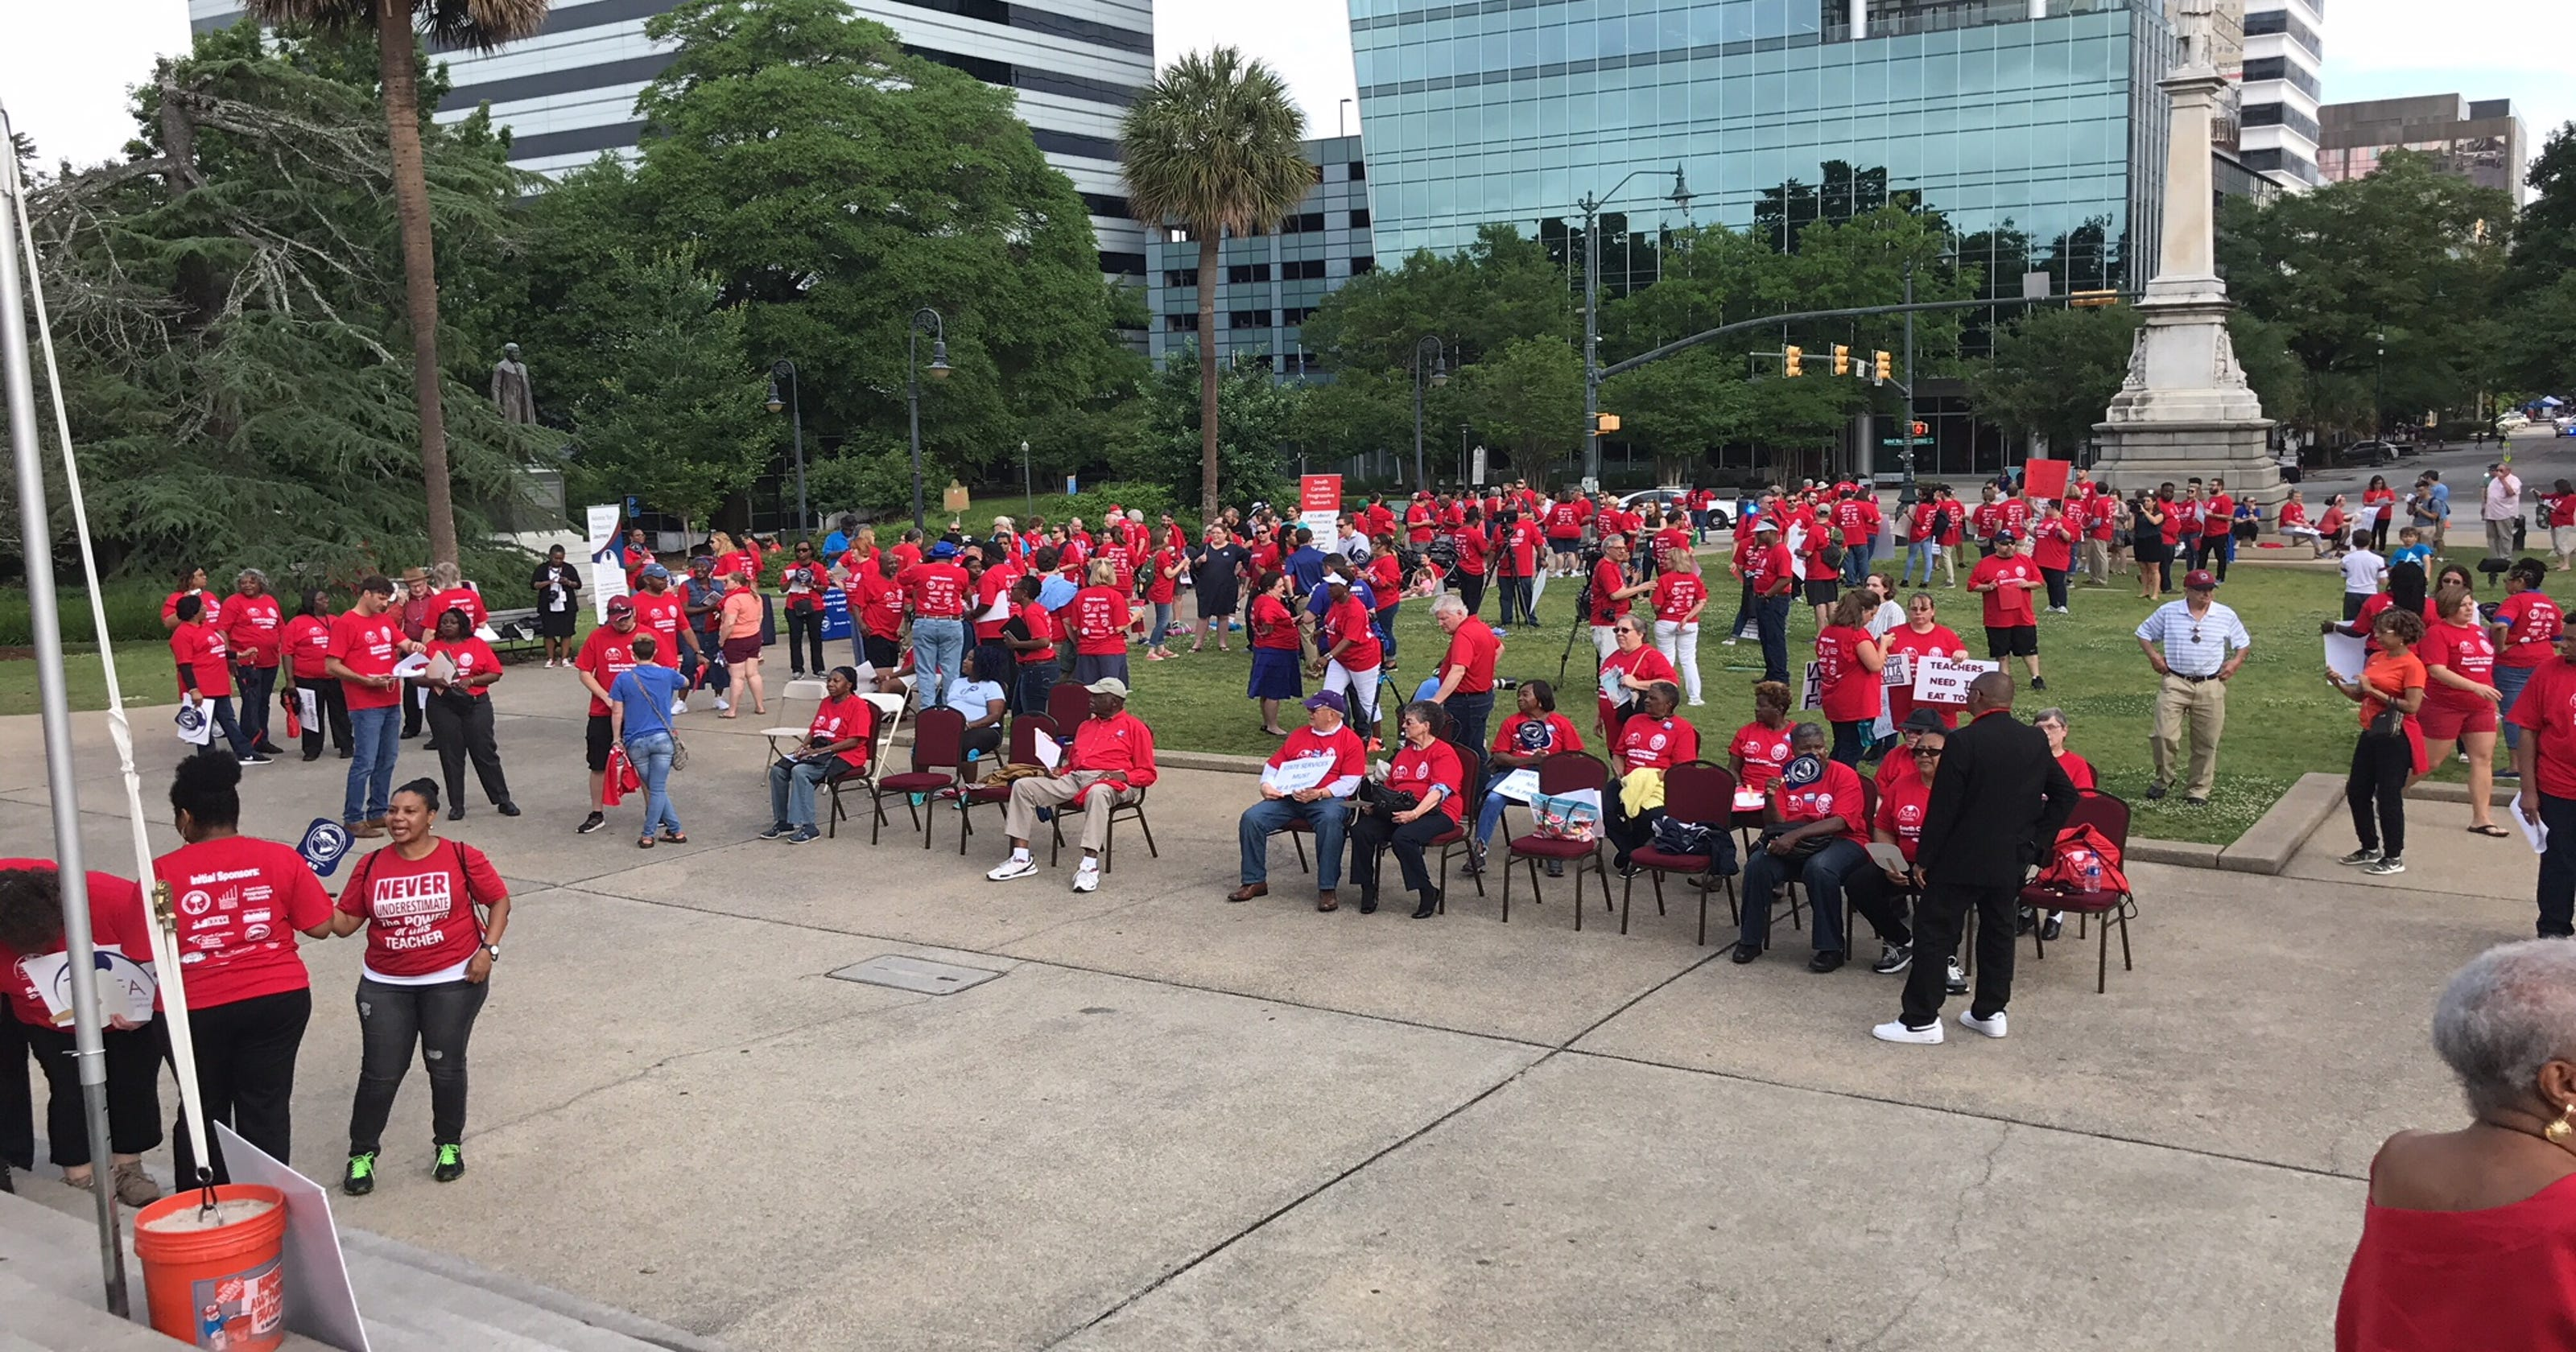 South Carolina Teachers State Workers Rally For A Livable Wage